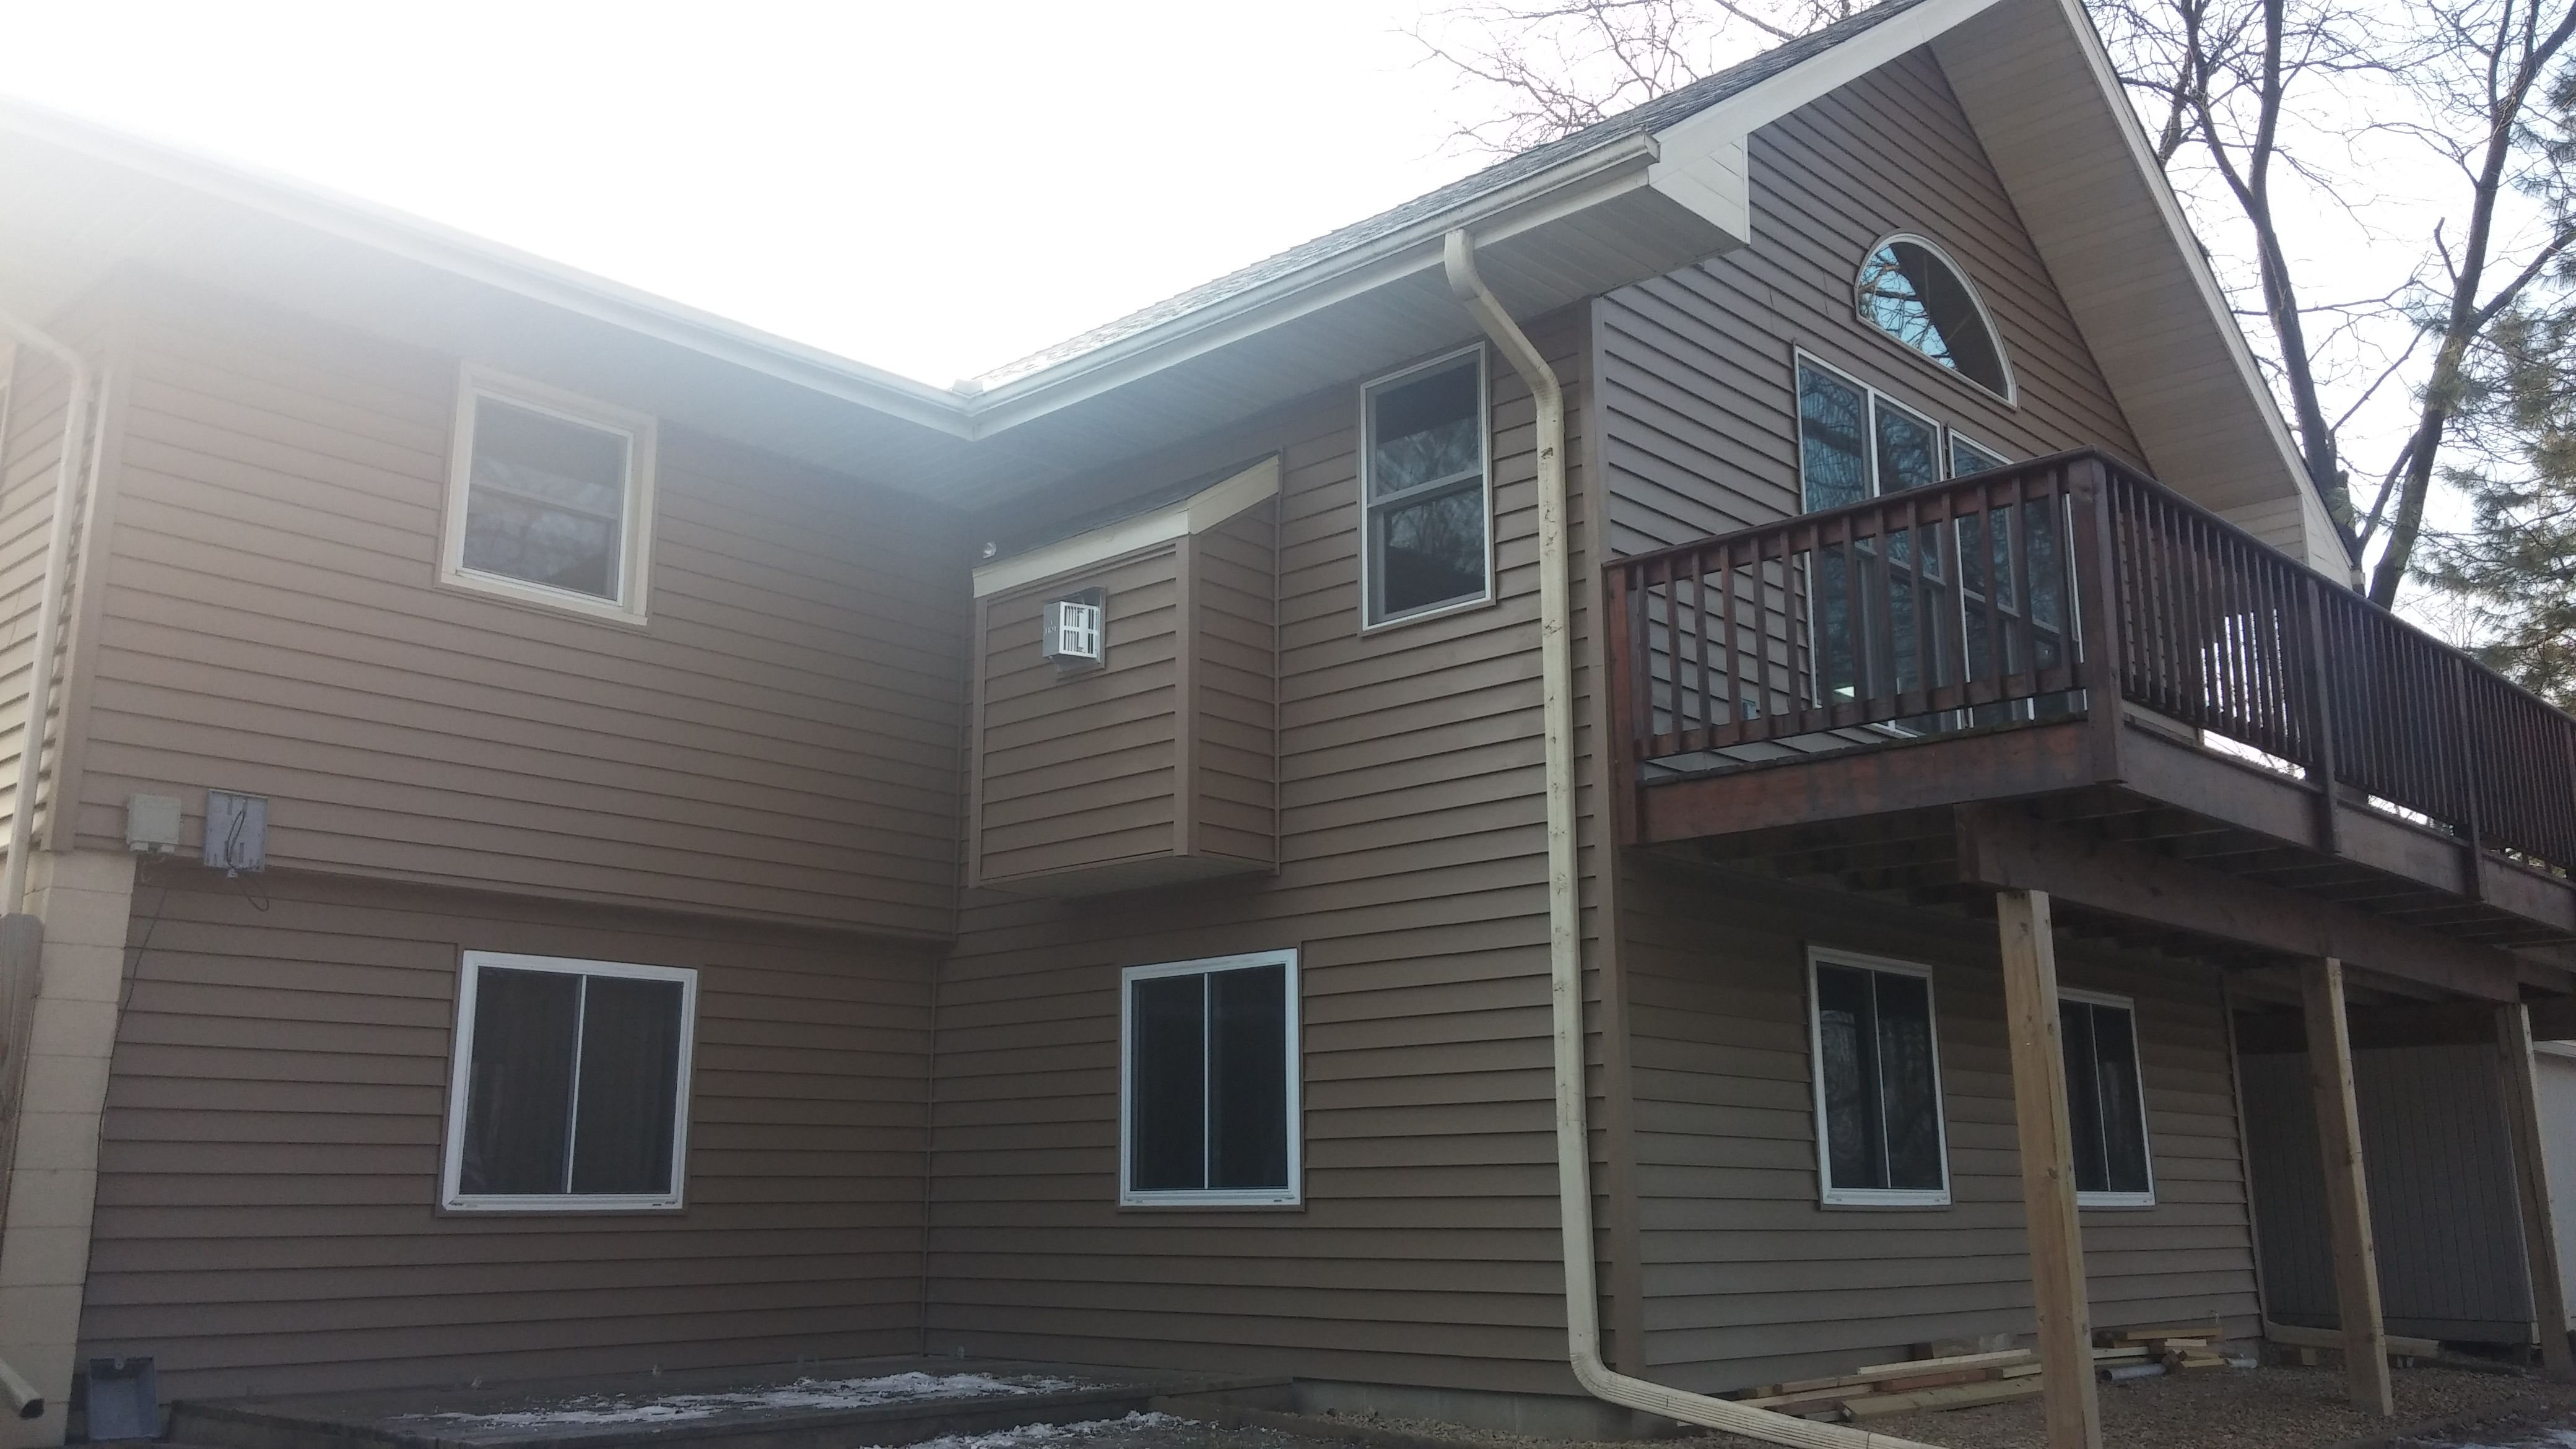 New Vinyl Siding In Fridley Mn Certainteed Hearthstone Color House Siding Siding Options Certainteed